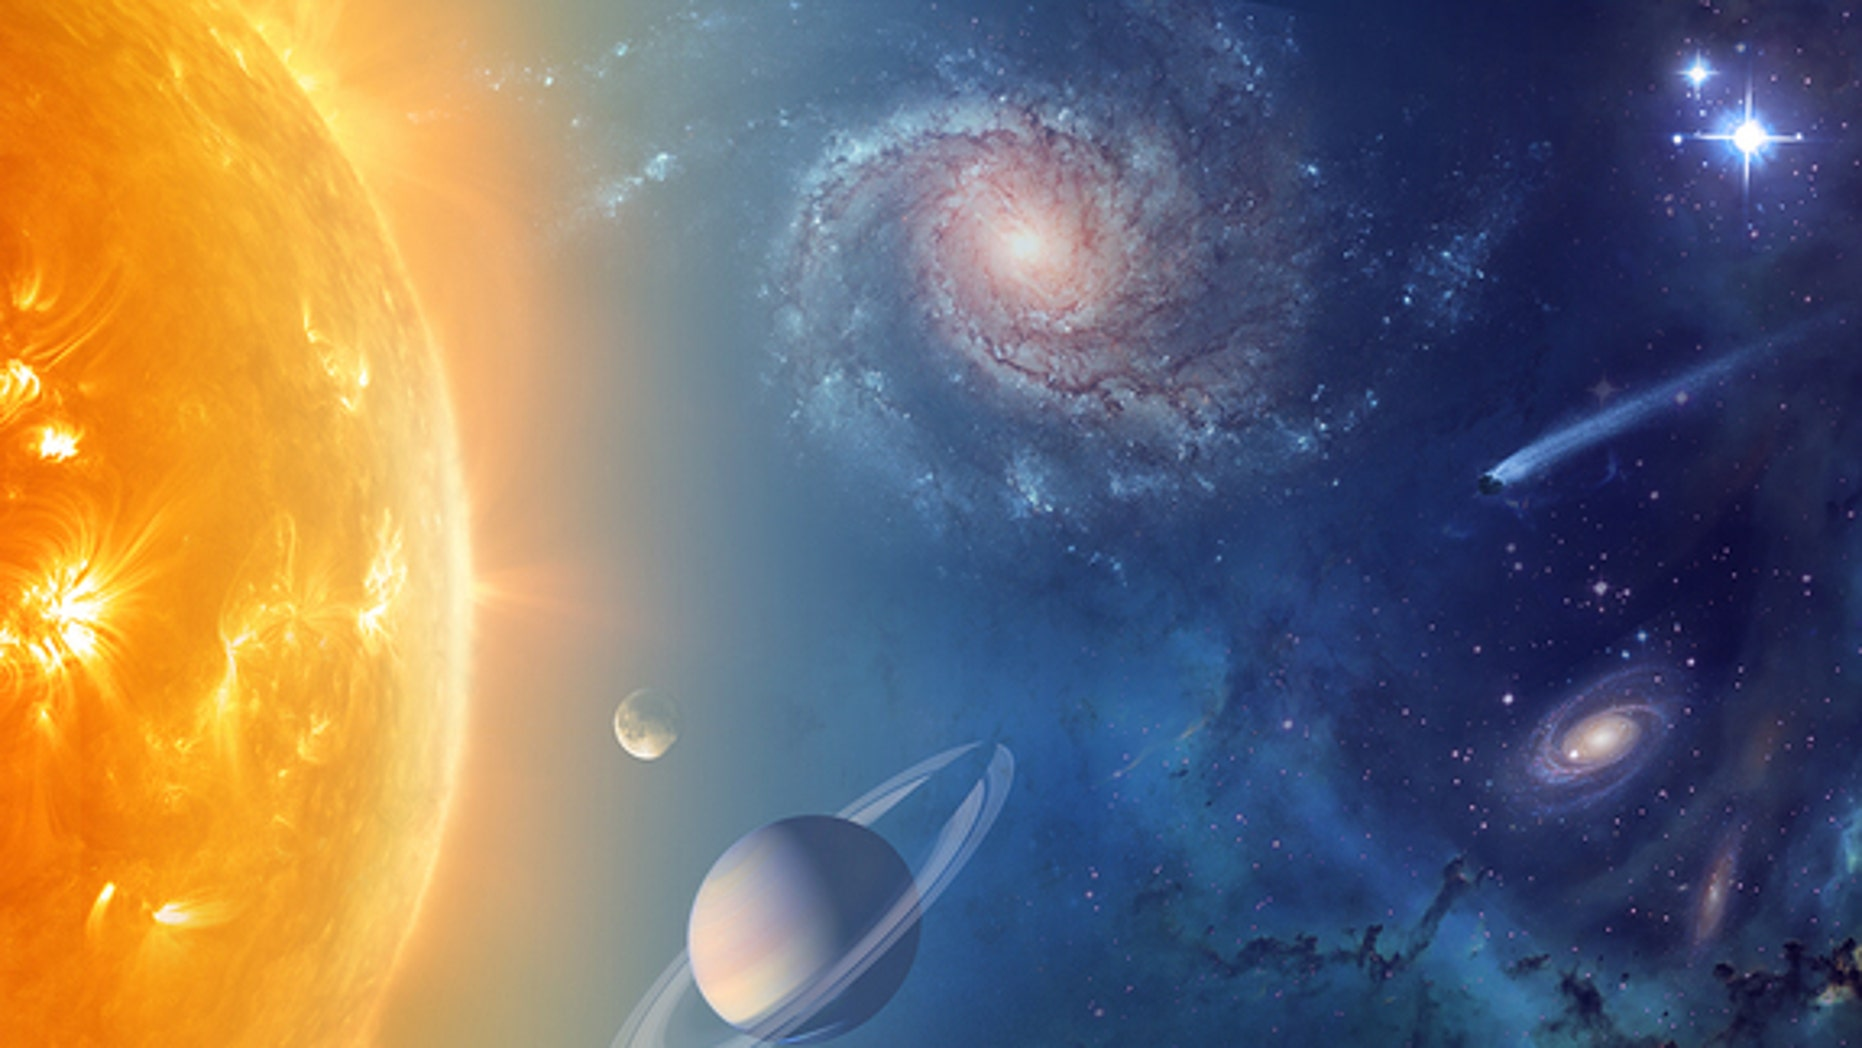 Recent observations by planetary probes and telescopes on the ground and in space have shown that water is common throughout our solar system and the broader Milky Way galaxy.